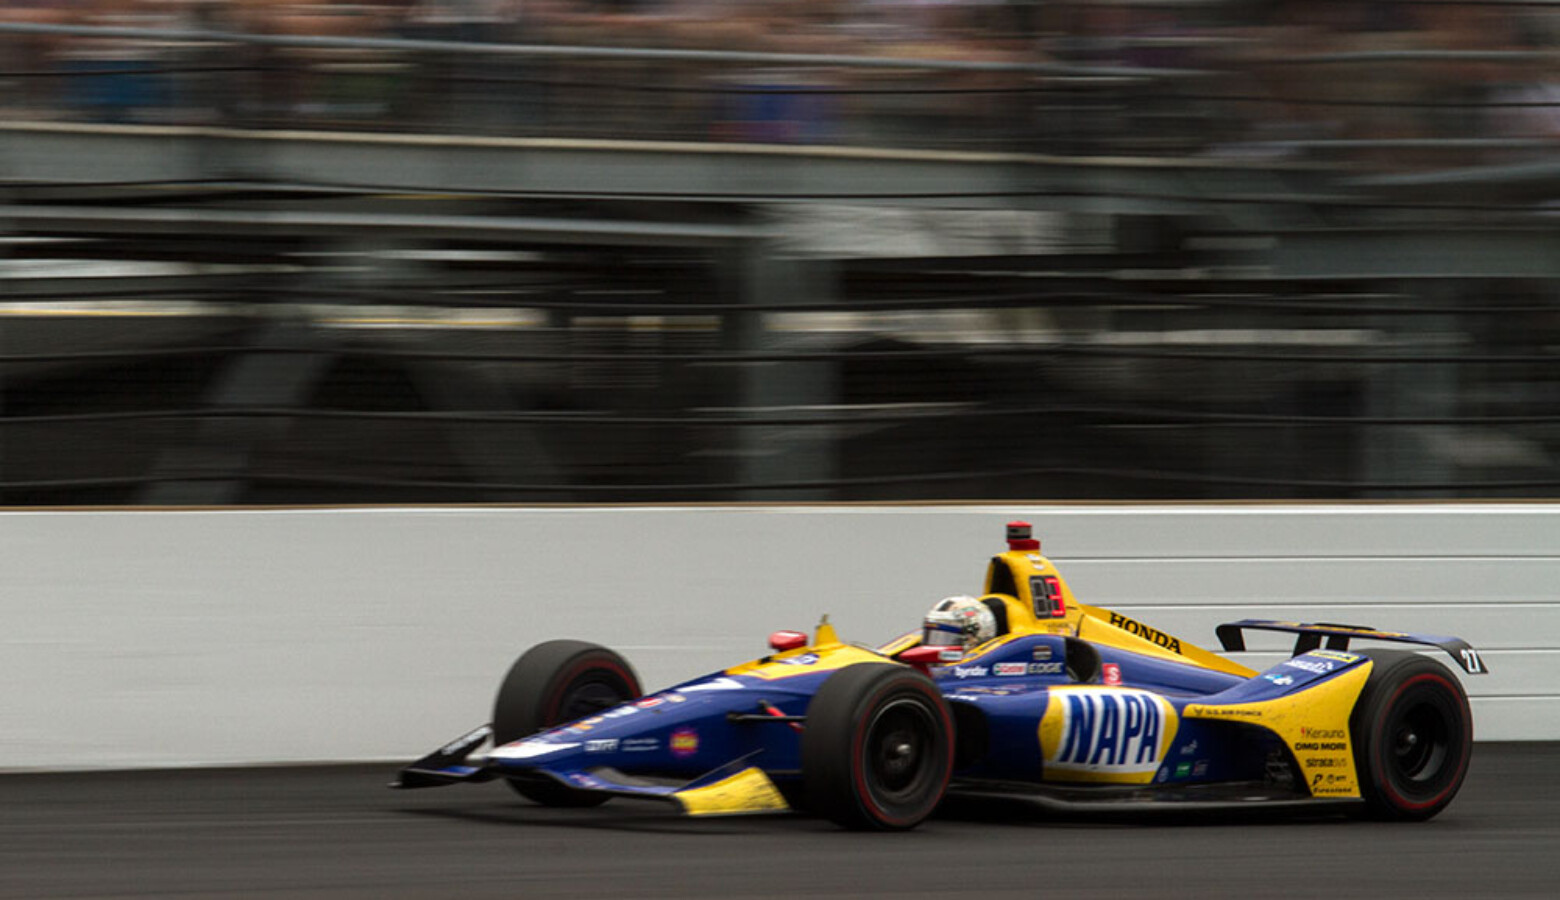 Alexander Rossi finished second in the 103rd running of the Indianapolis 500 on Sunday, May 26, 2019. (FILE PHOTO: Doug Jaggers/WFYI News)